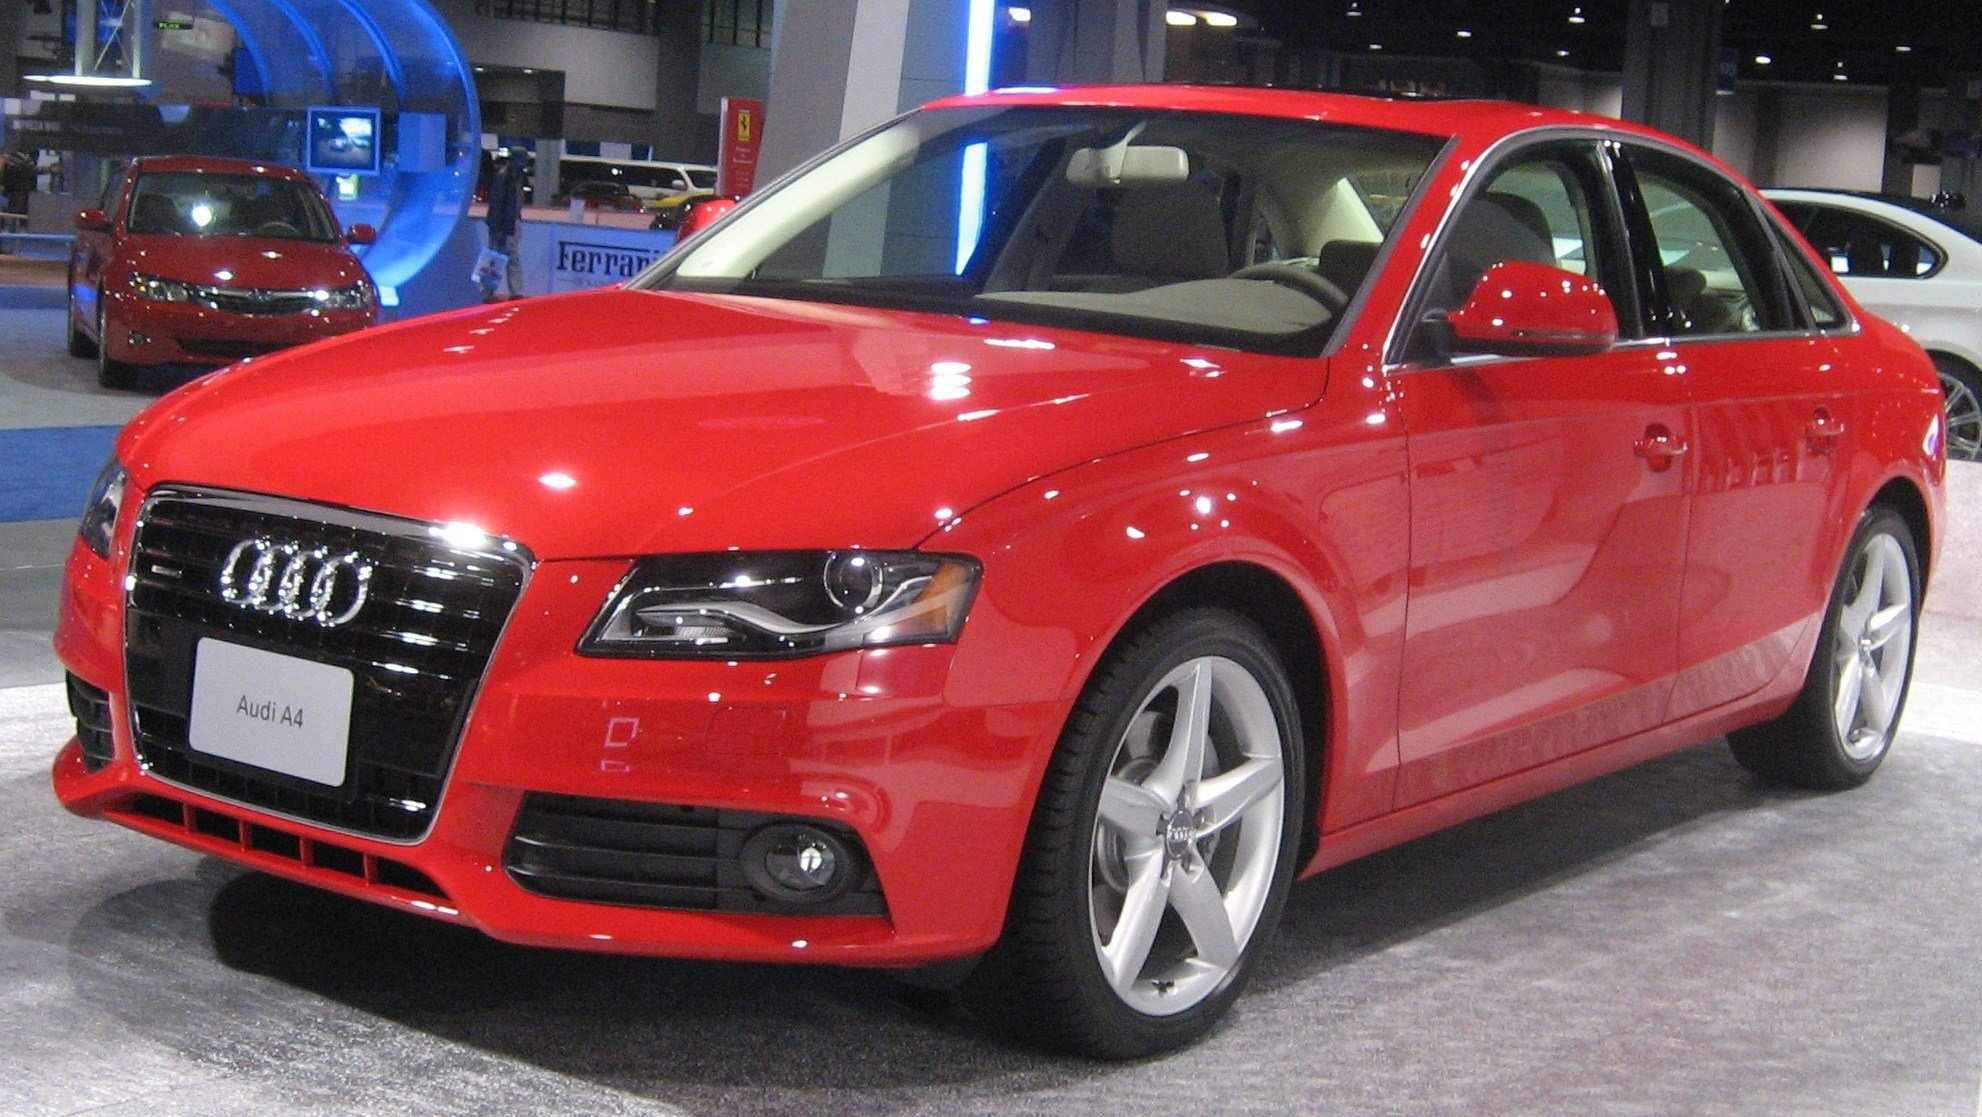 Latest Automotive Wallpapers 2009 Audi A4 Photo Free Download